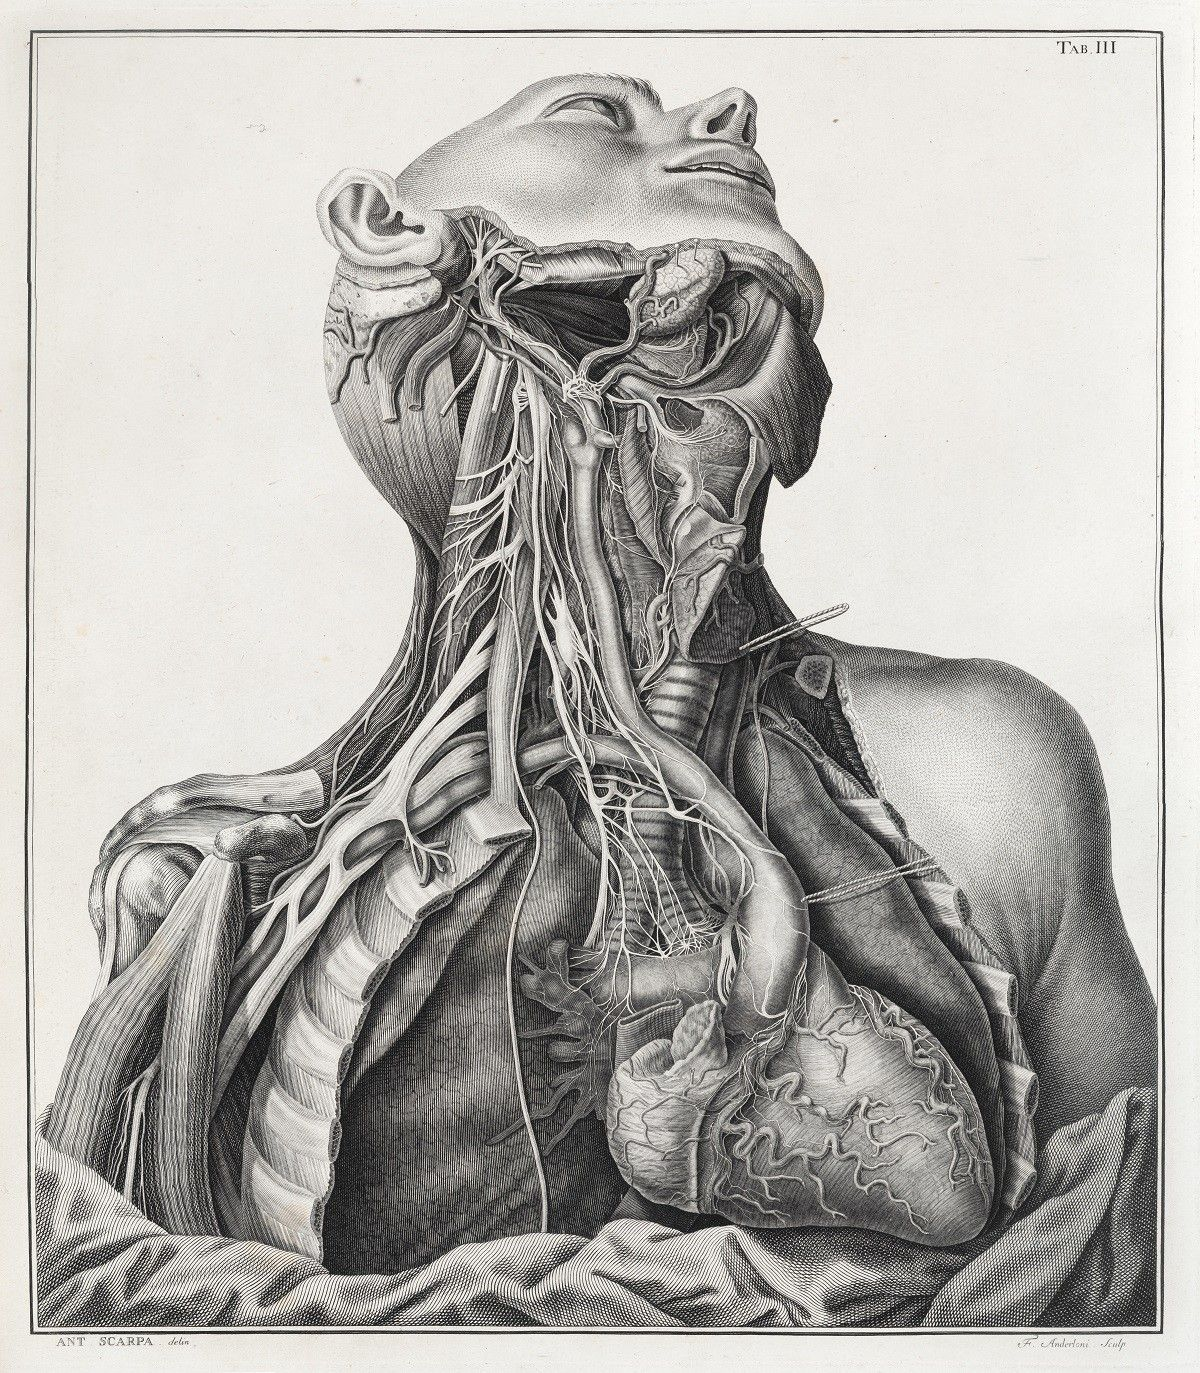 Under The Skin Illustrating The Human Body Exhibition At Royal College Of Physicians Museum In London